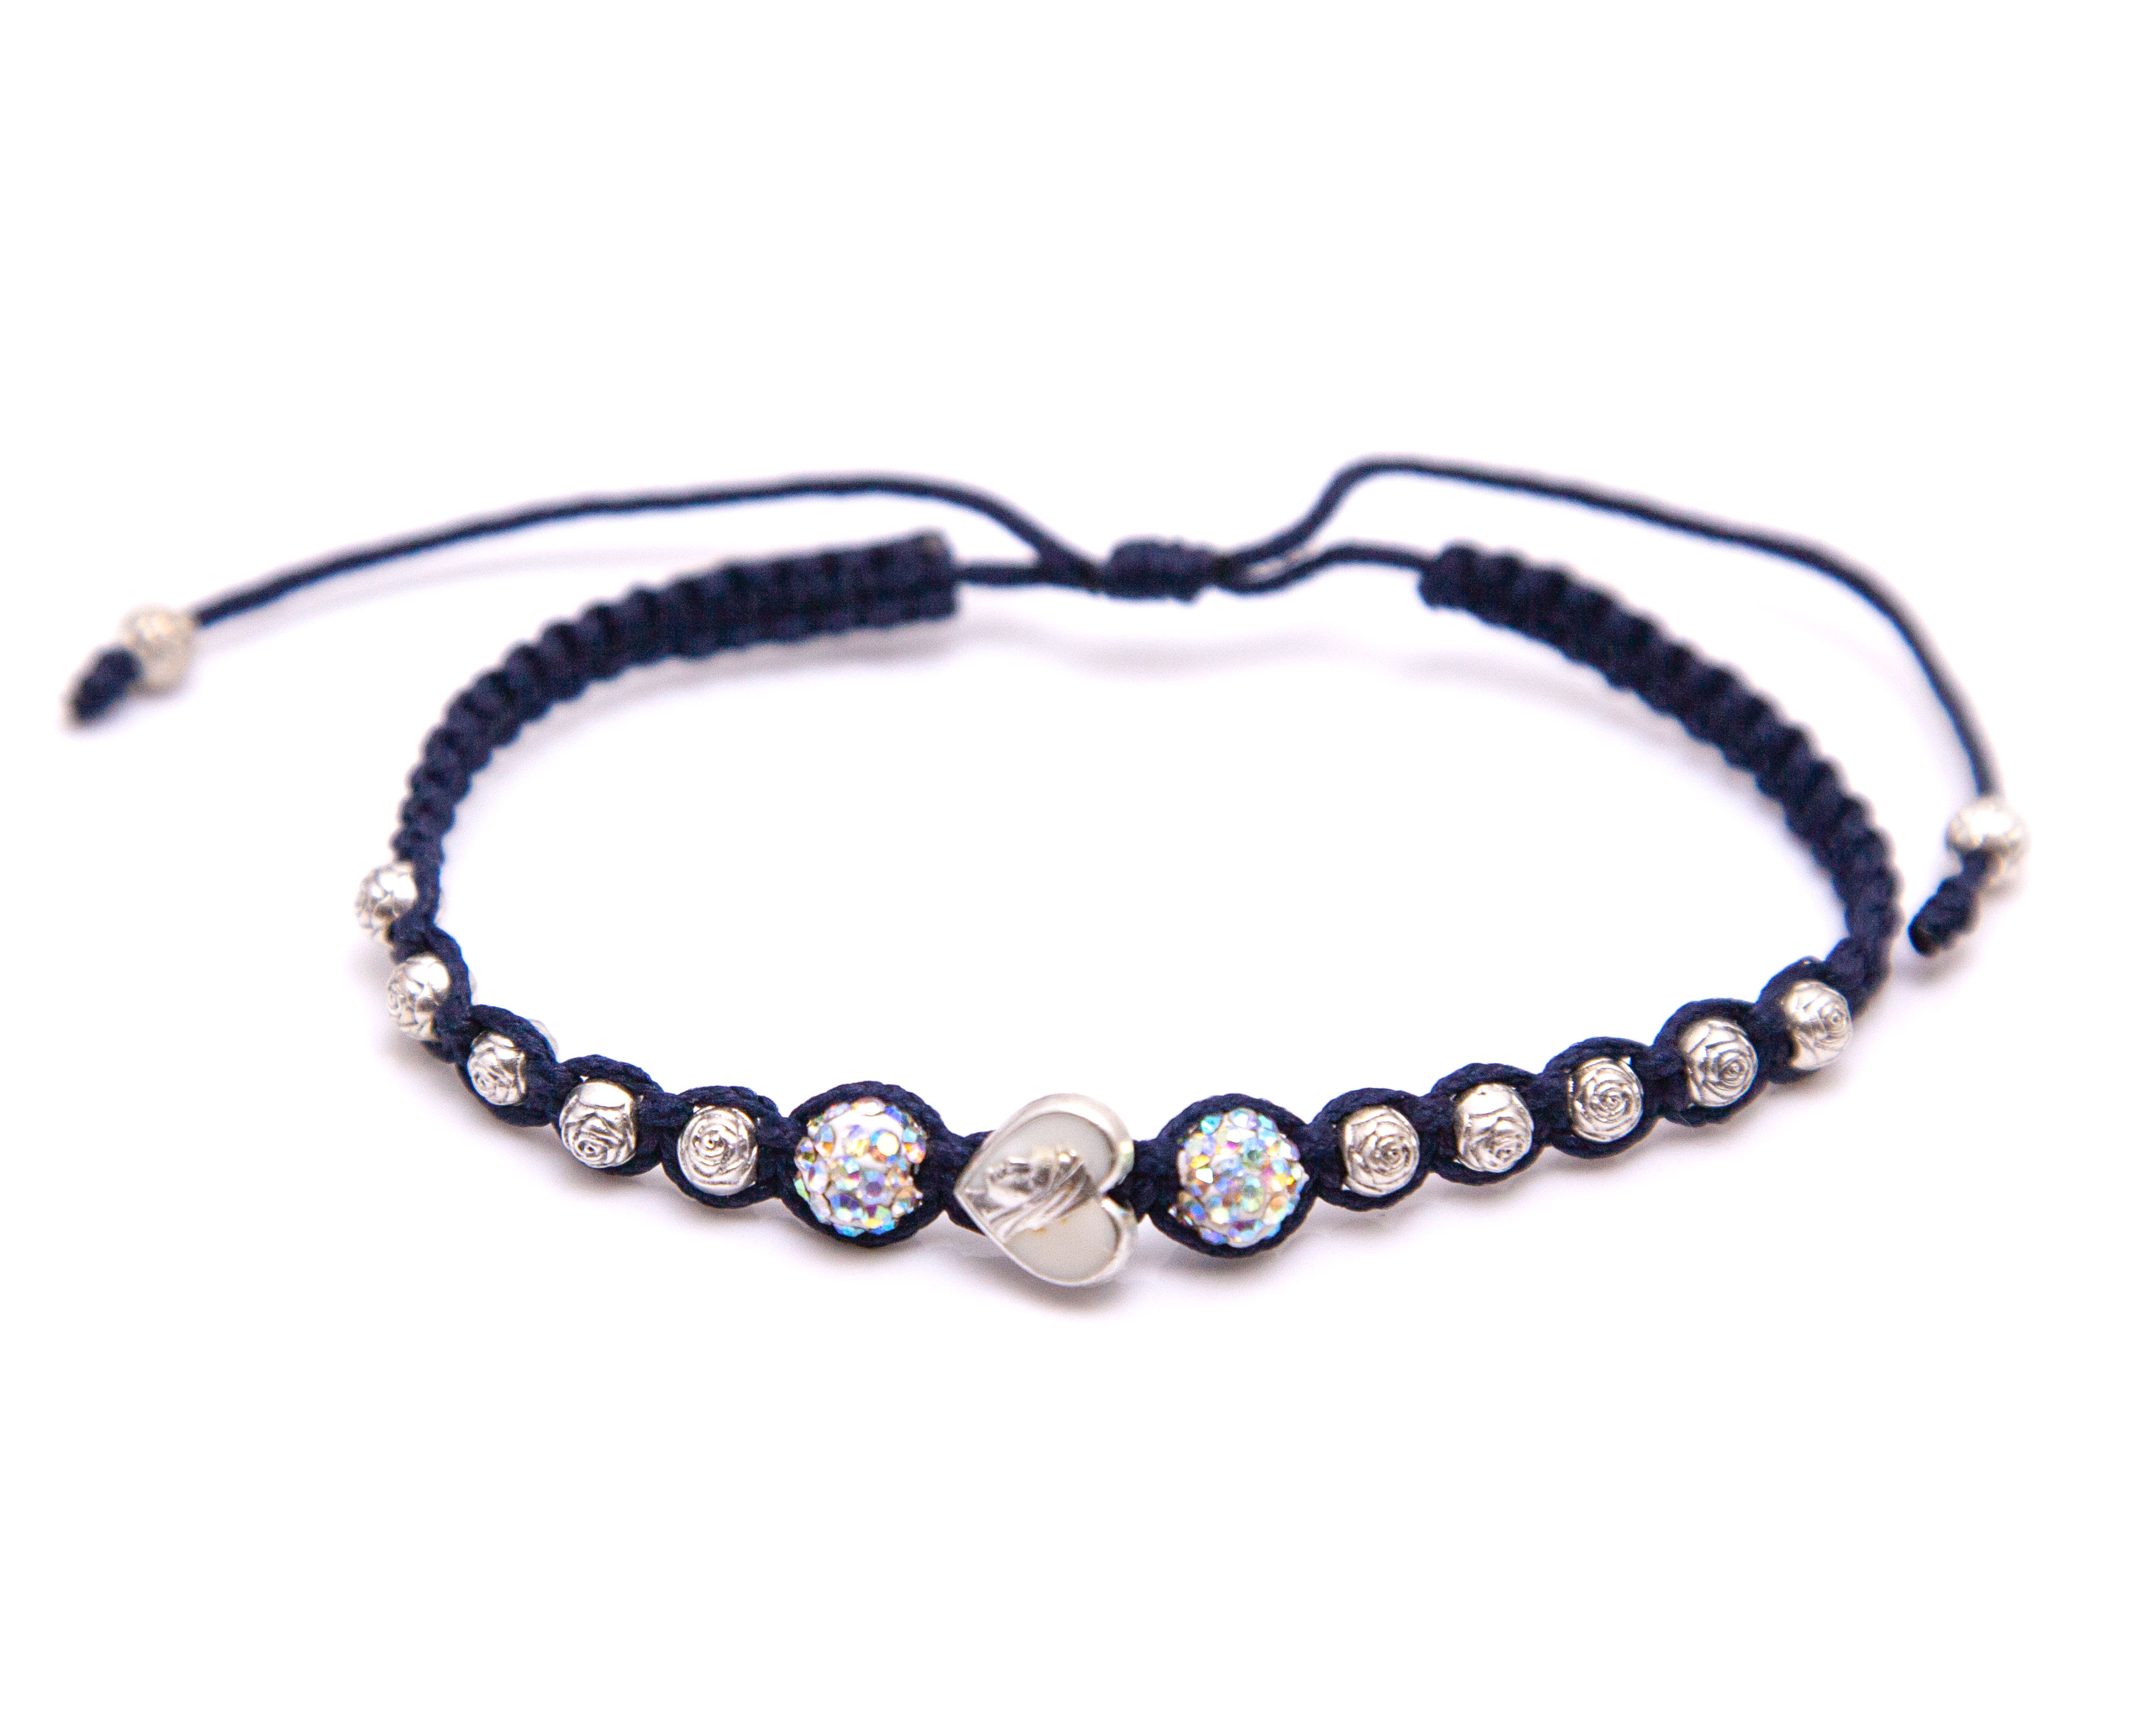 Our Lady of Roses Rosary Bracelet